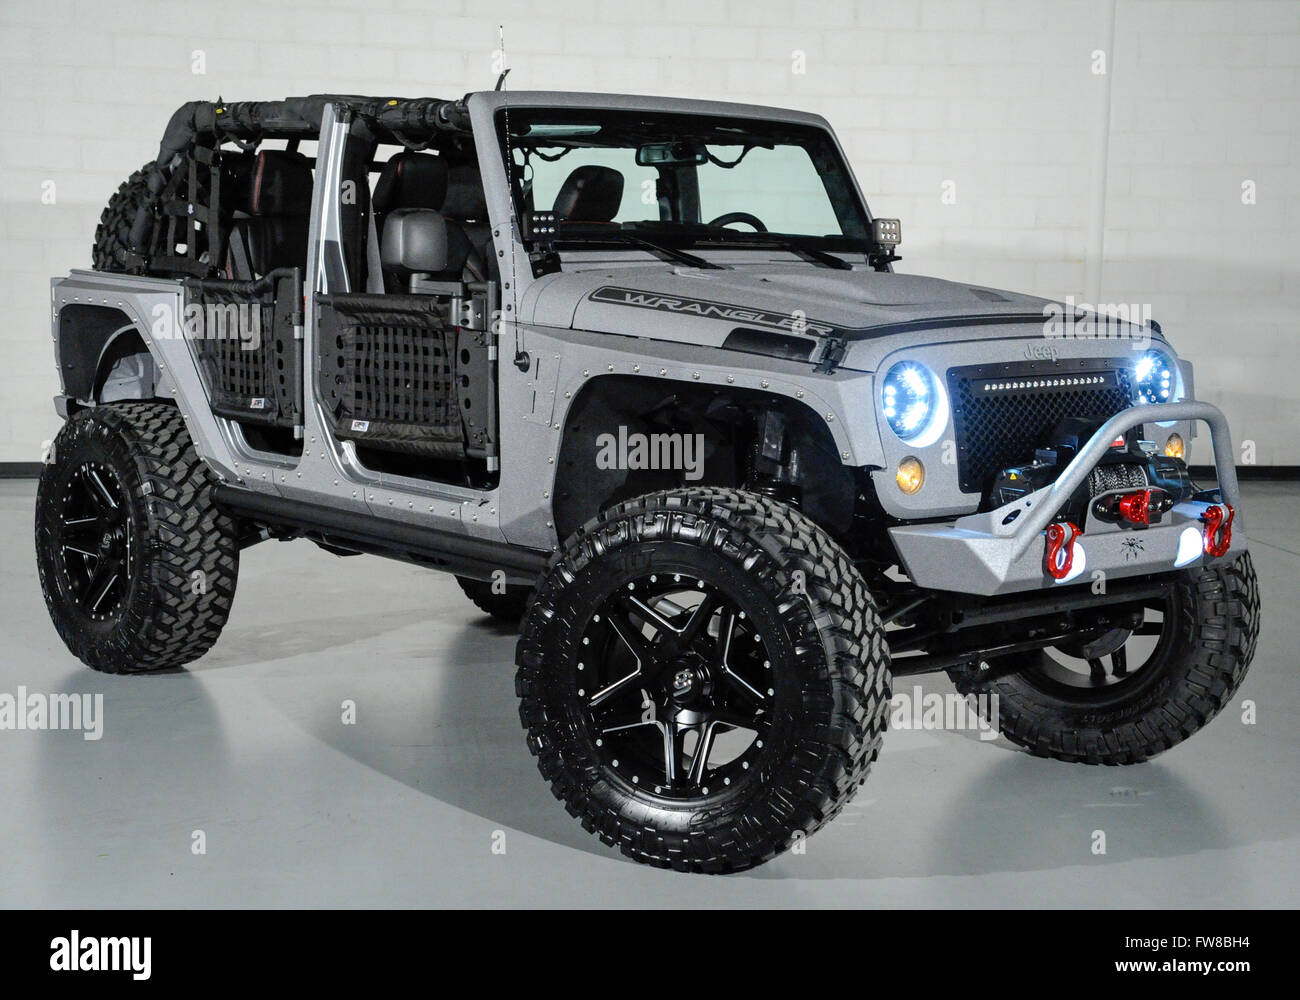 April 1 2016: Custom Jeep Wrangler with custom doors and leather interior. & April 1 2016: Custom Jeep Wrangler with custom doors and leather ... Pezcame.Com